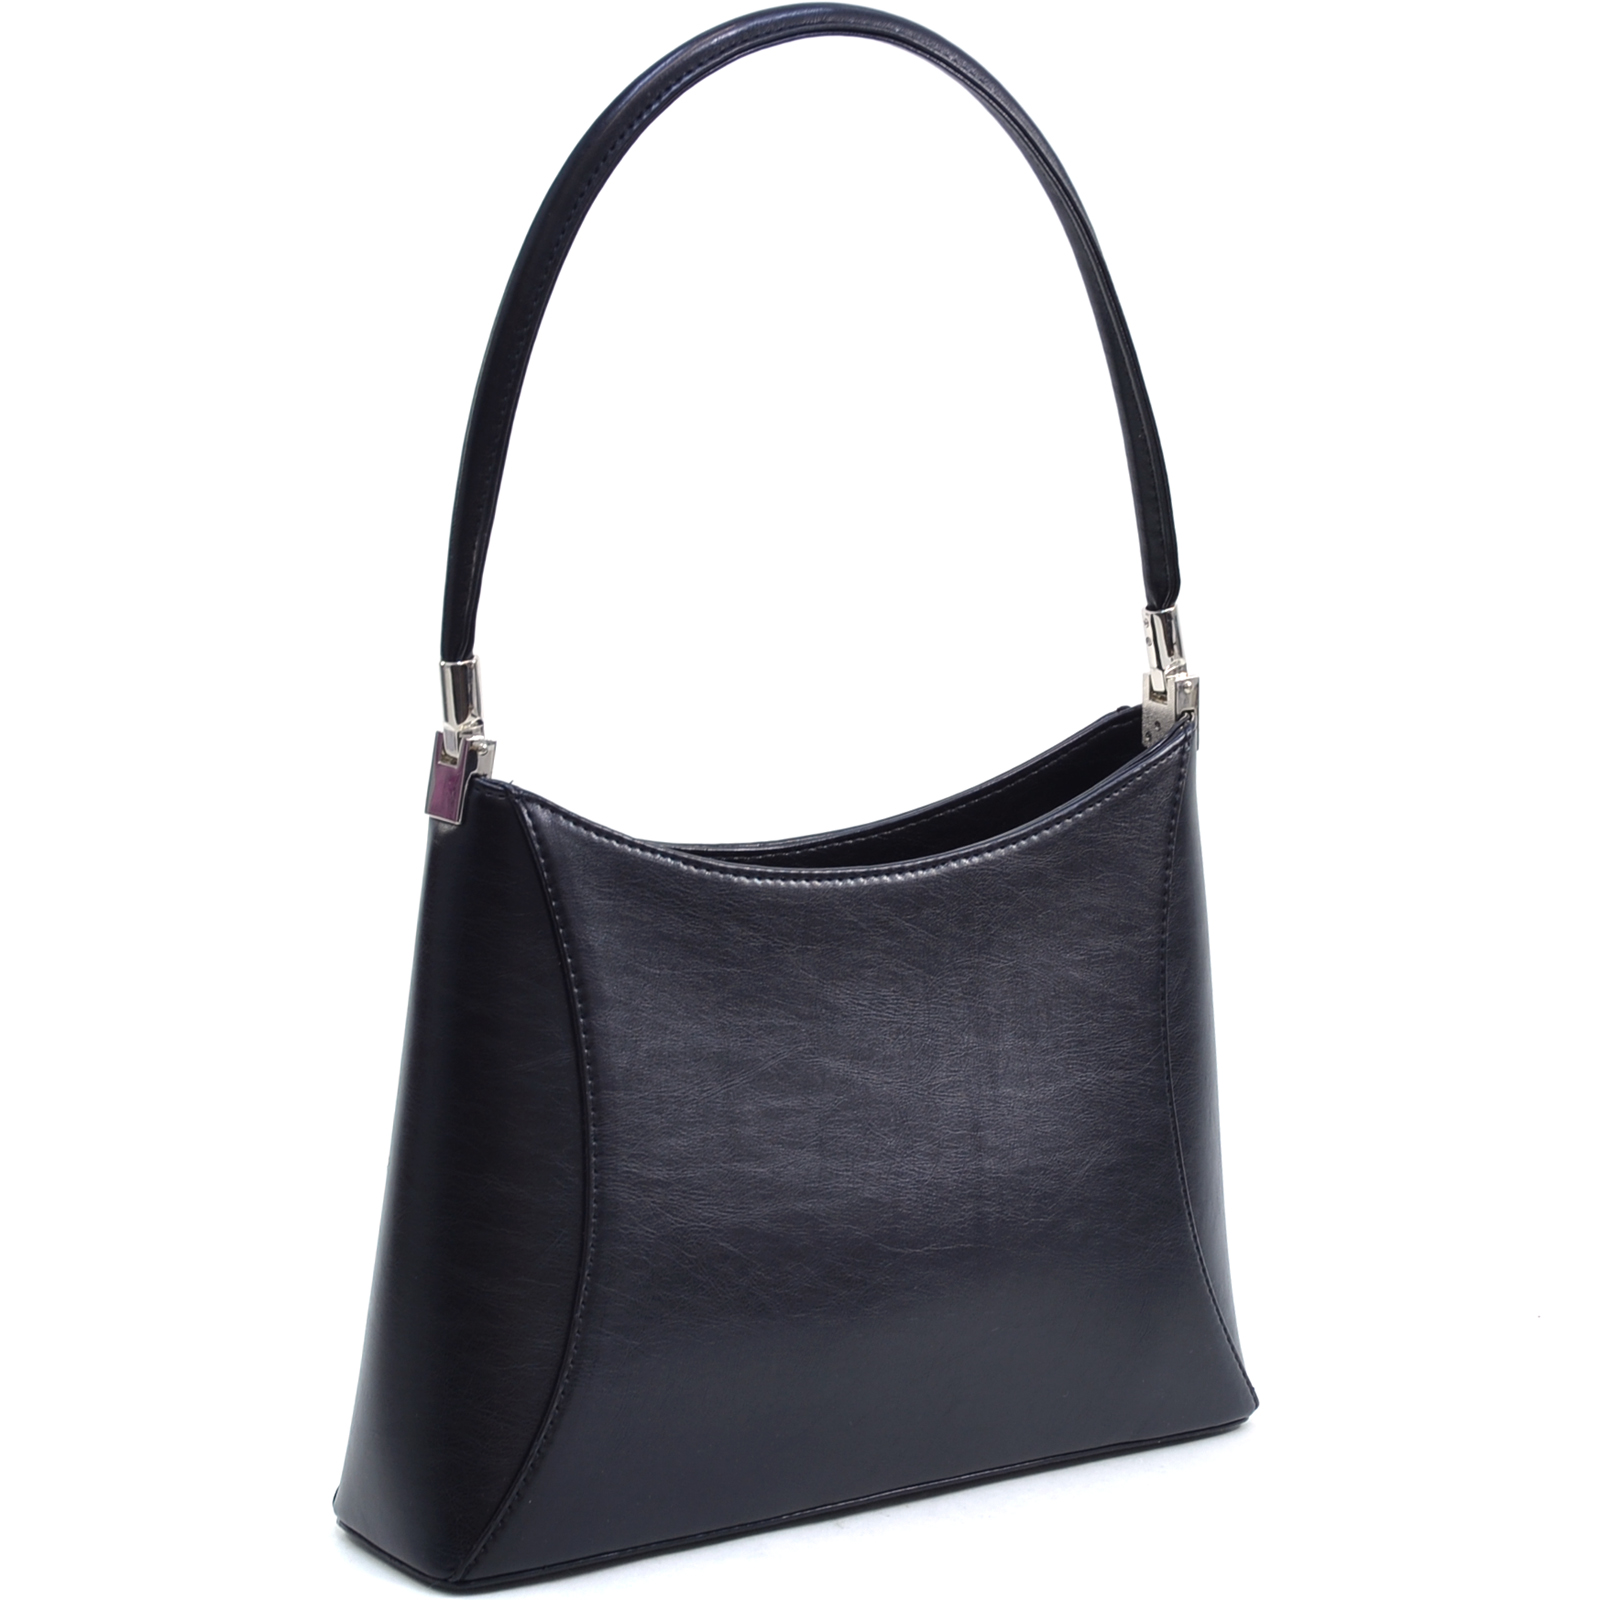 Designer inspired fine textured classic shoulder bag